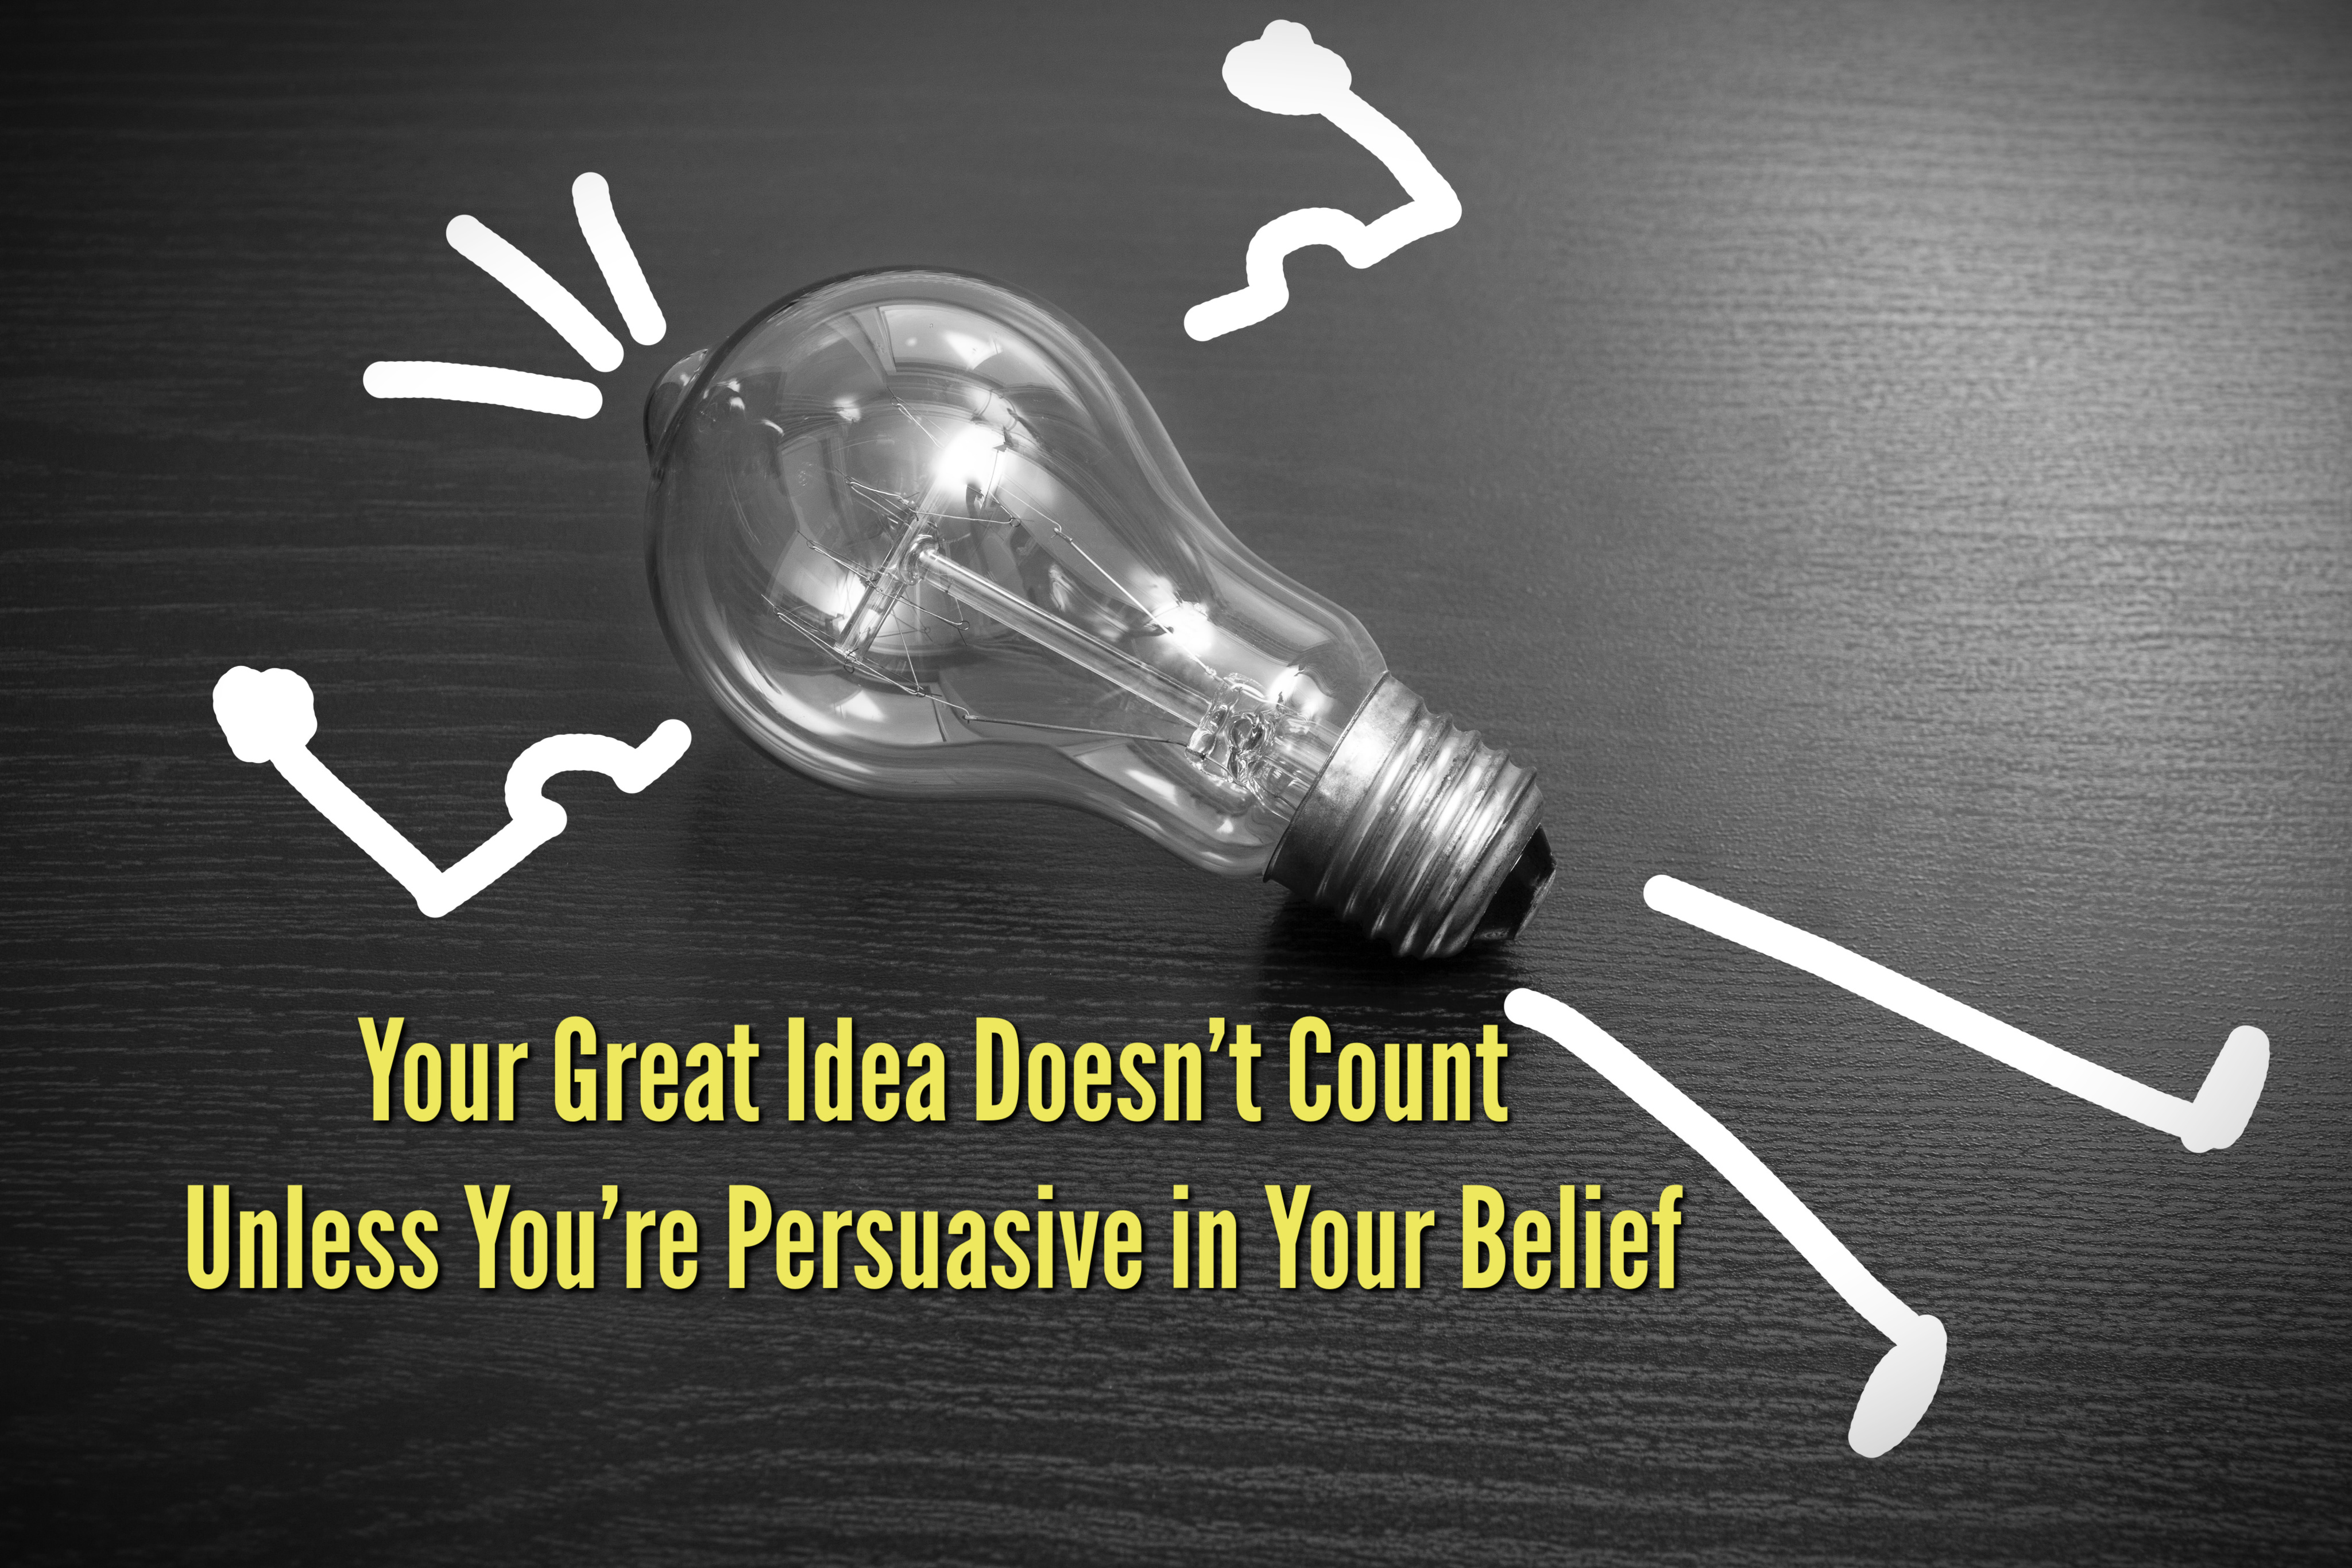 Your Great Idea Doesn't Count Unless You're Persuasive in Your Belief